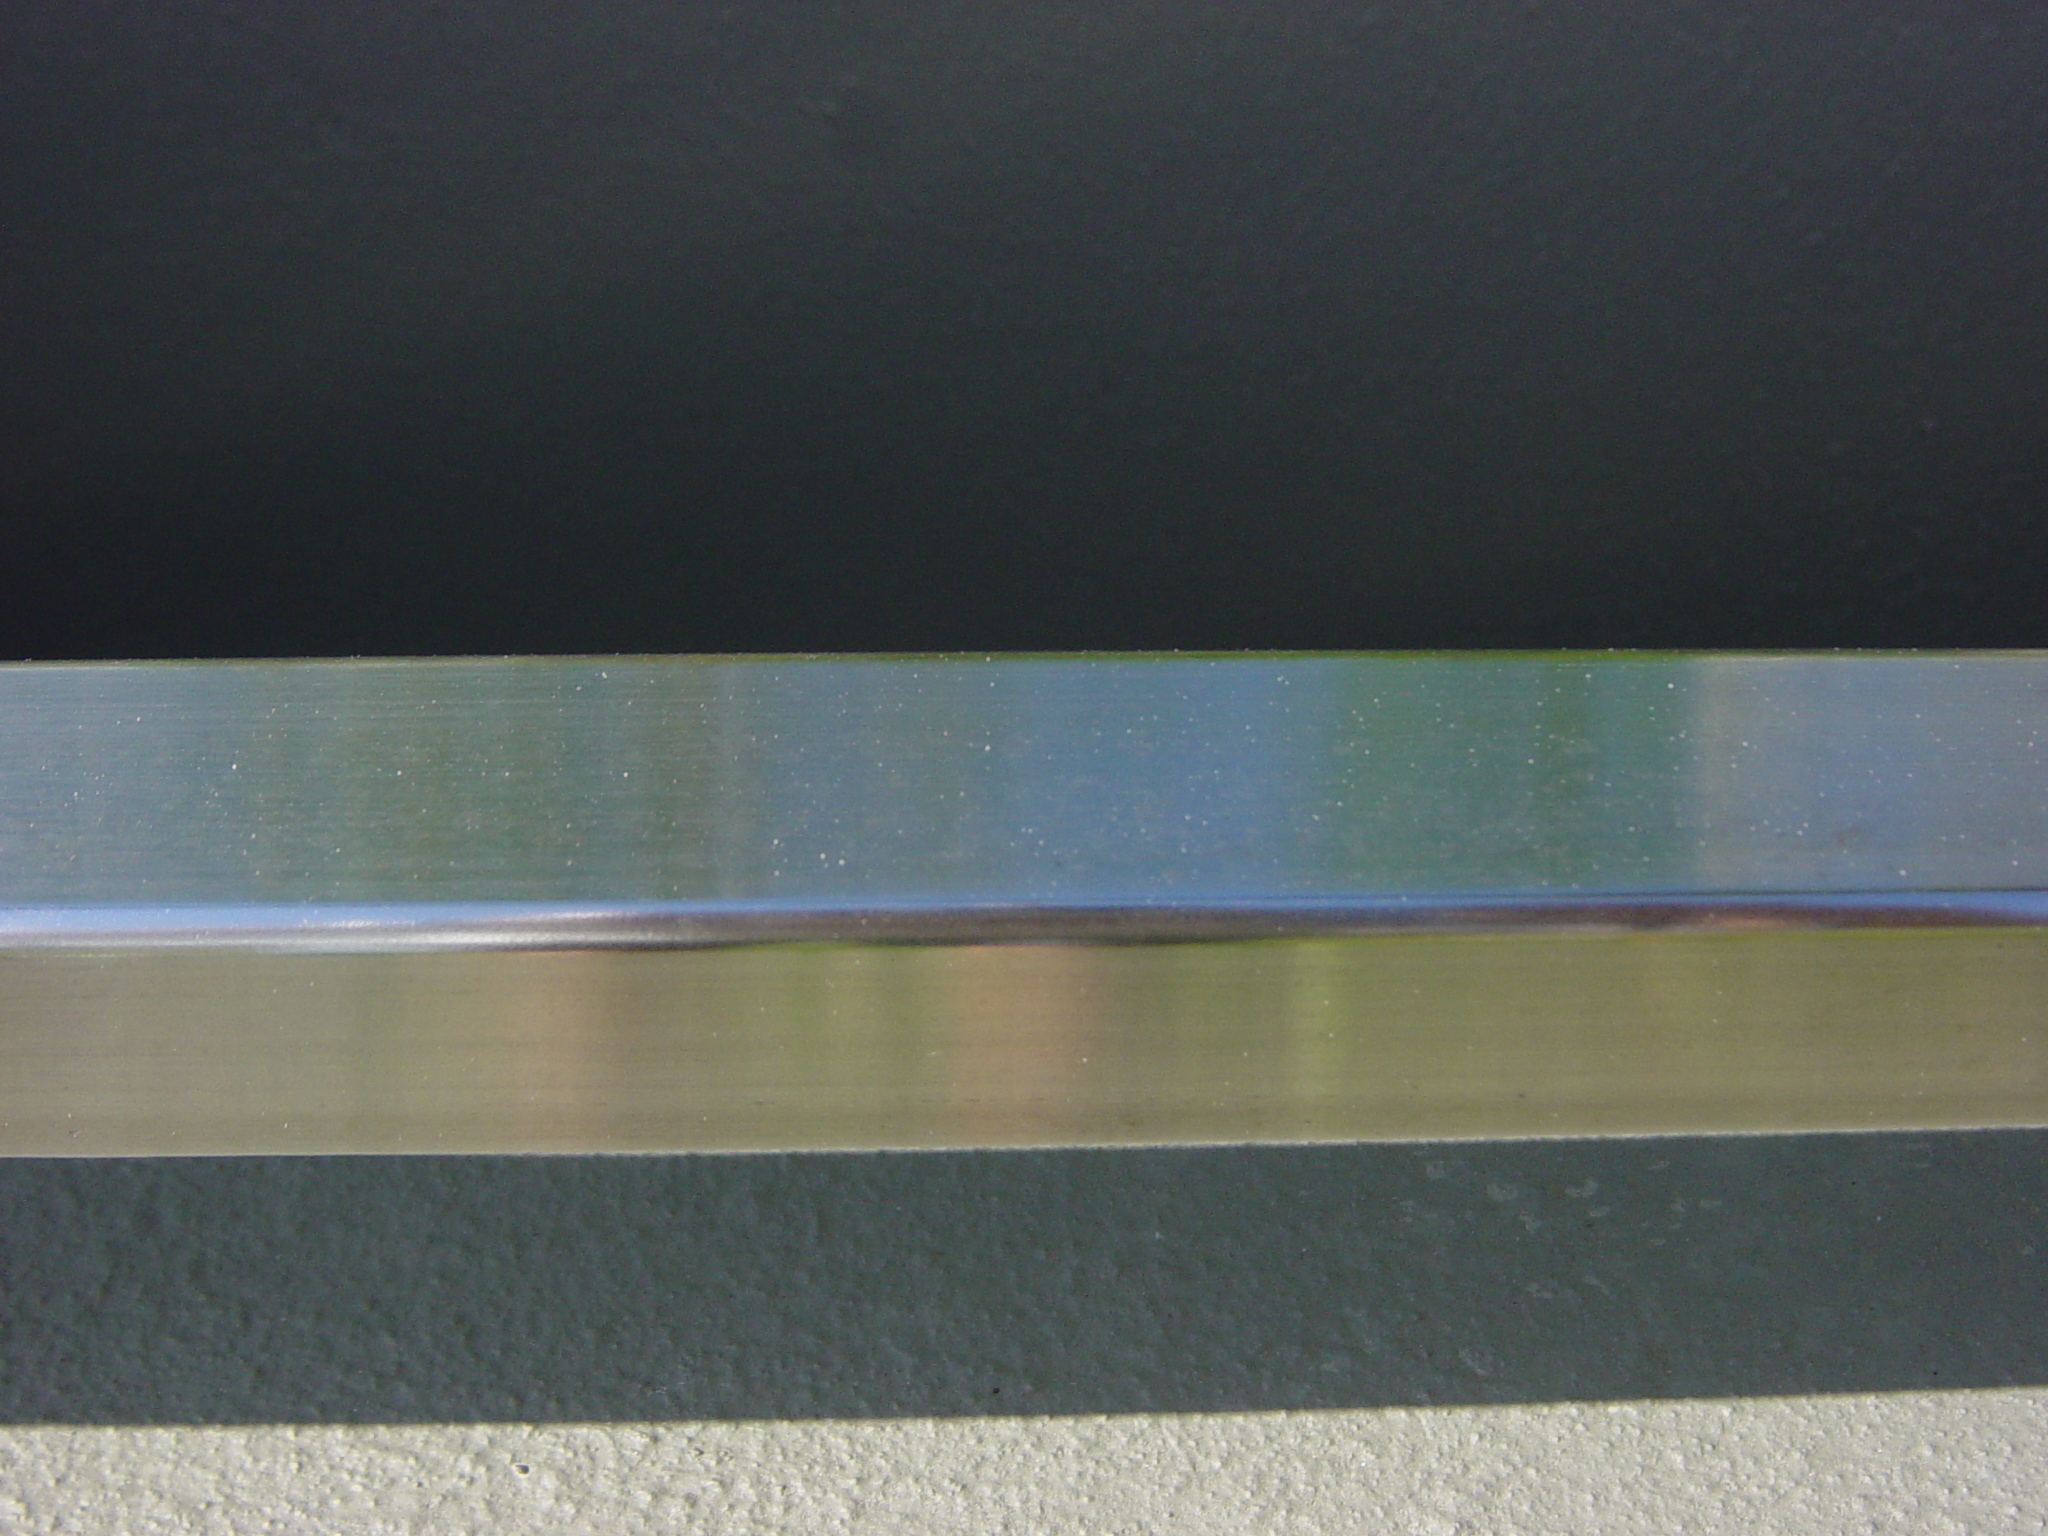 boat stainless steel polishing